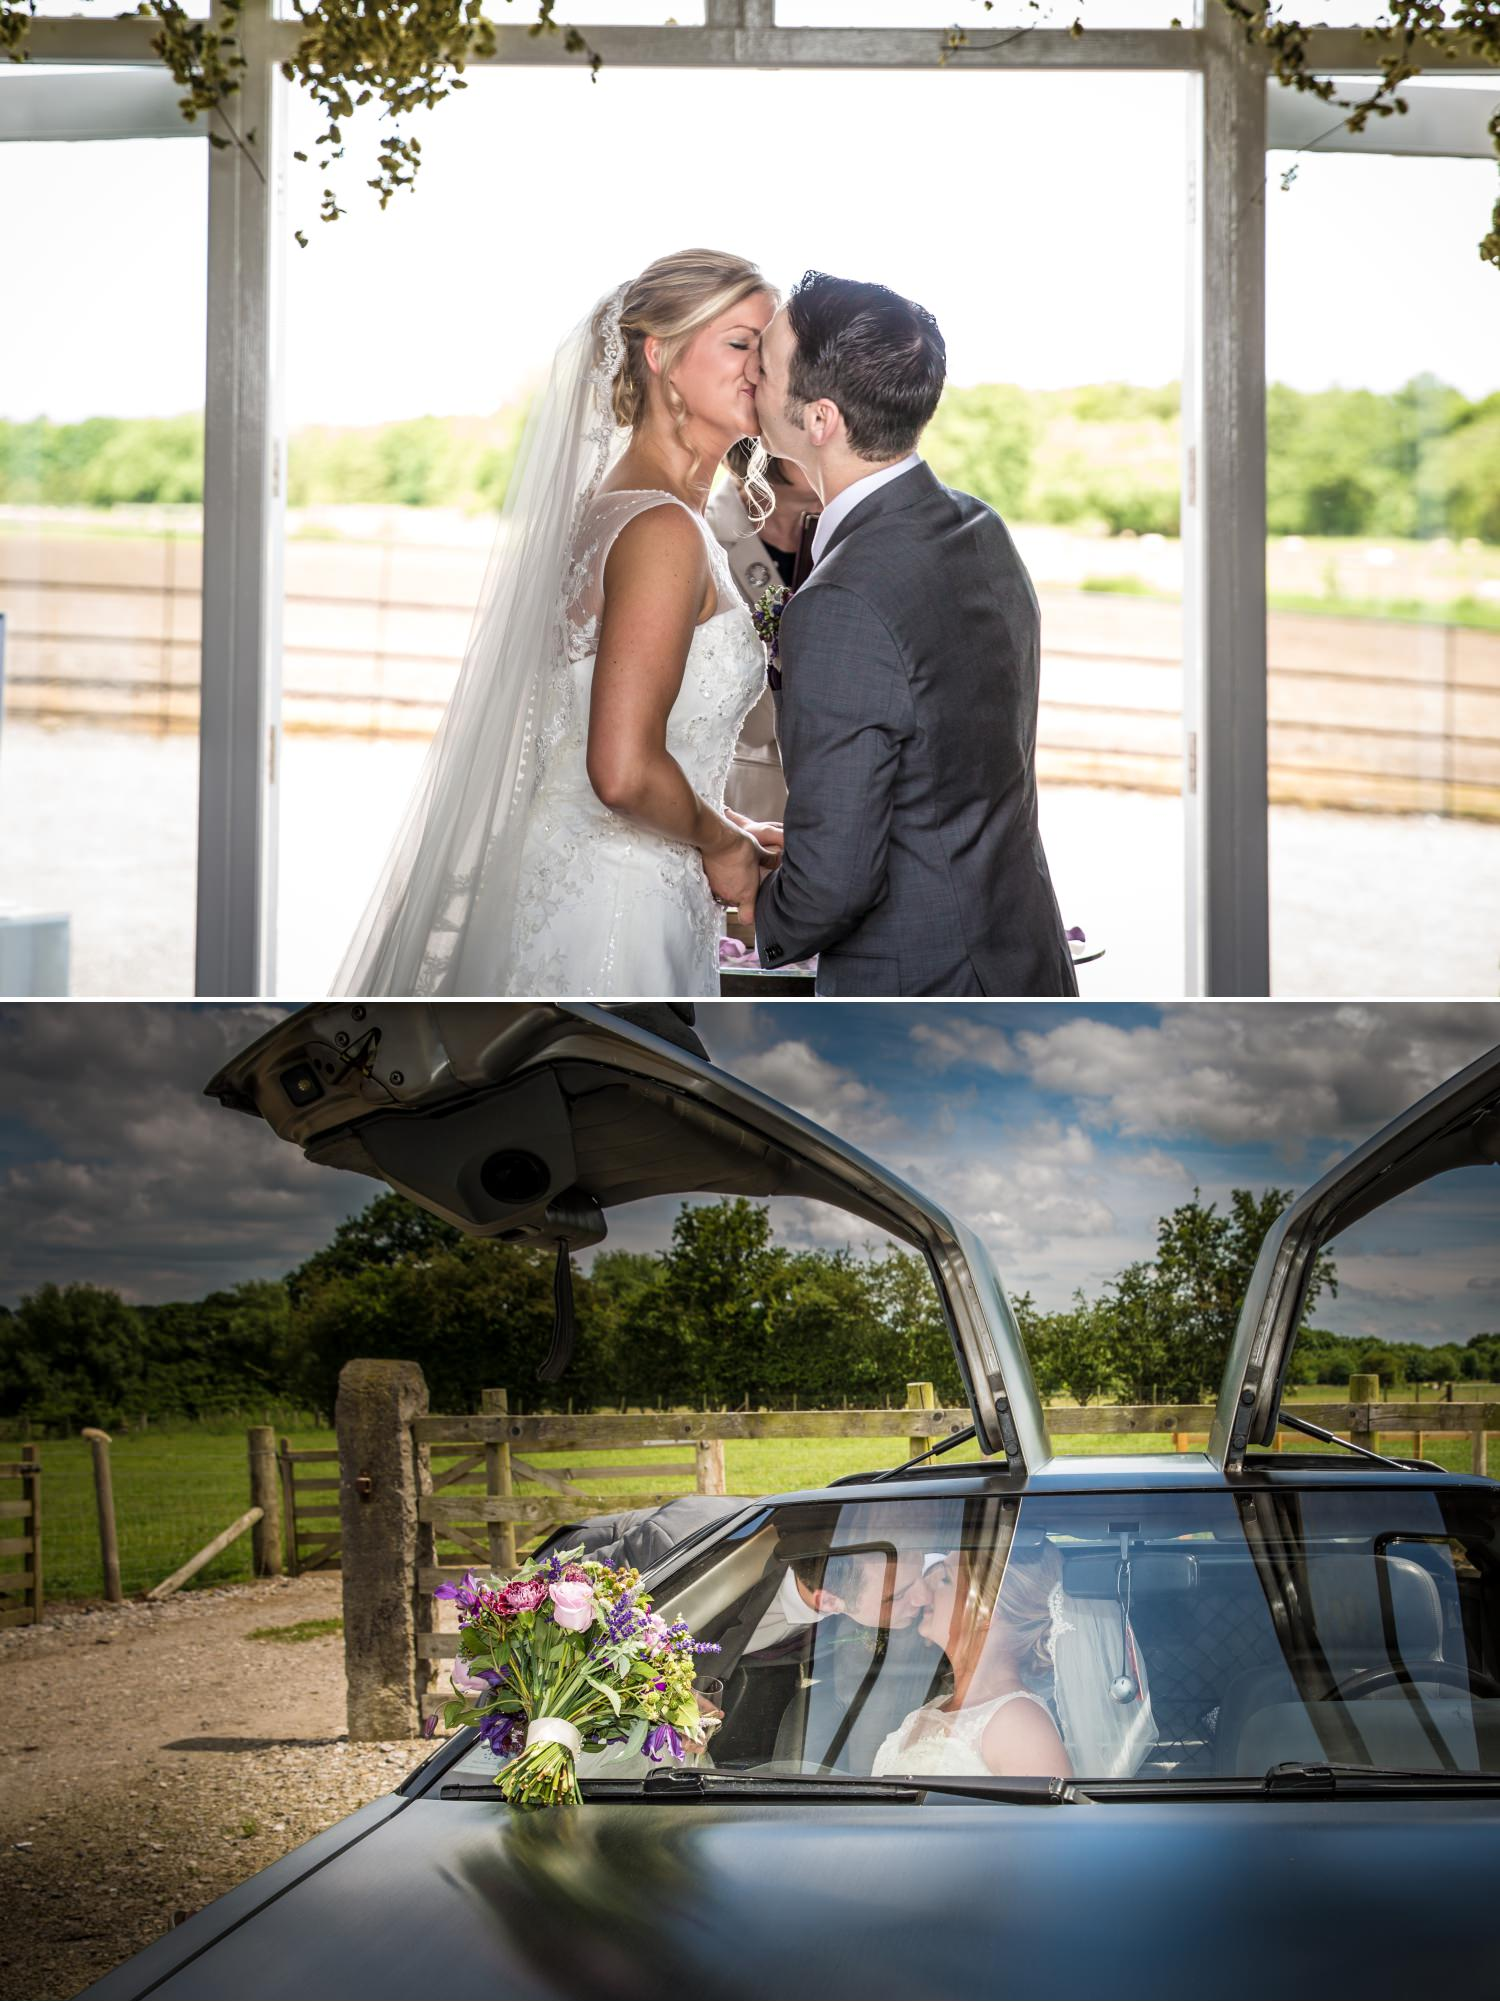 First kiss wedding photography at Pentrehobyn Hall